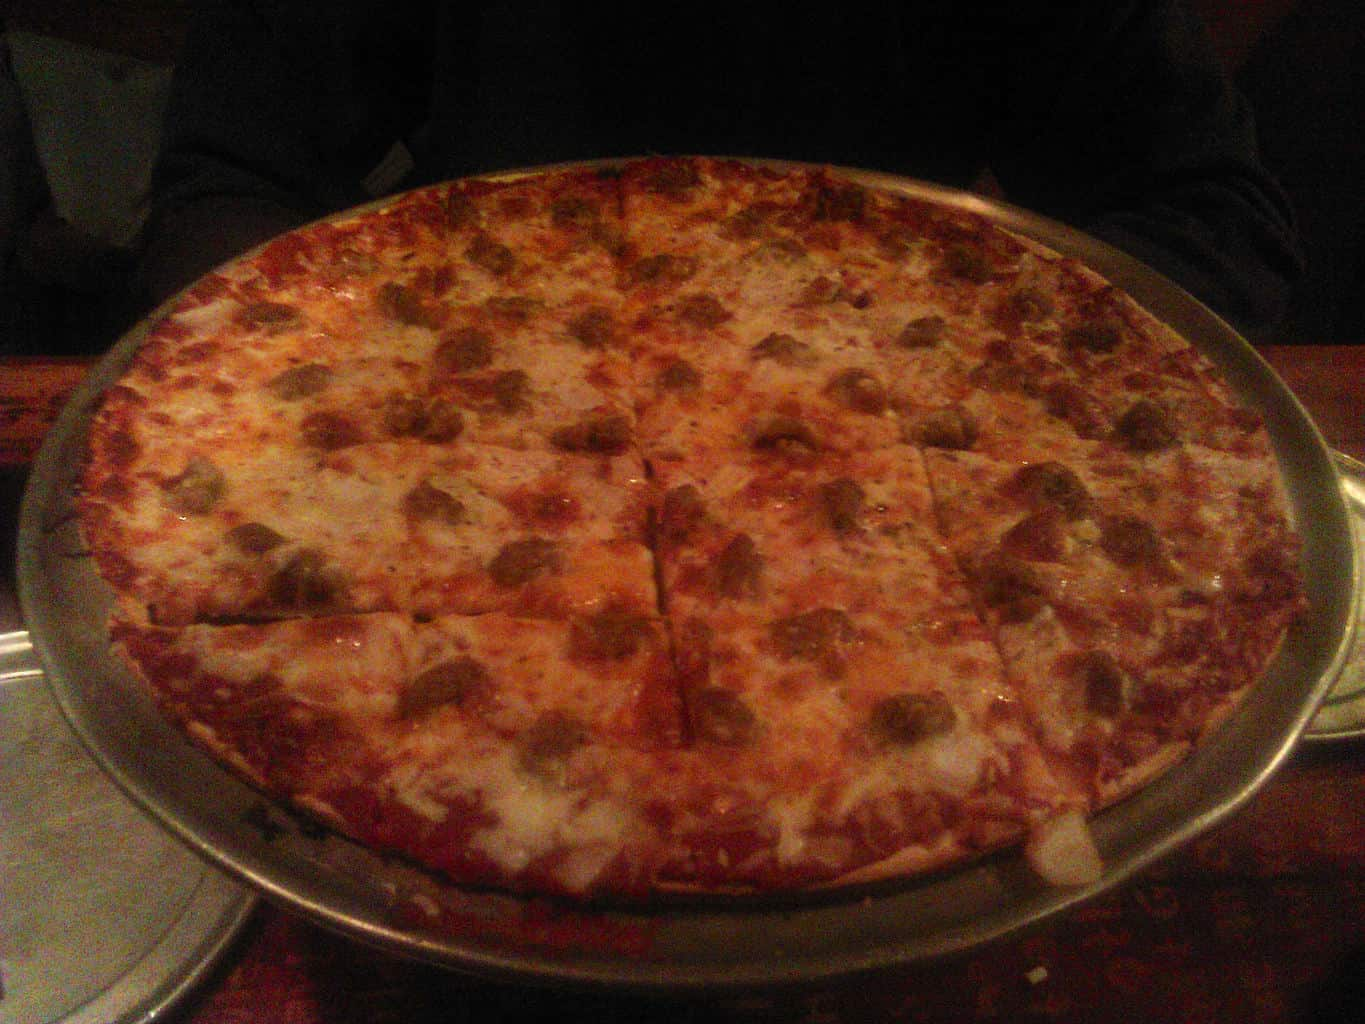 Best Pizza in STL (and Provel-free!) - 2012 69/2012